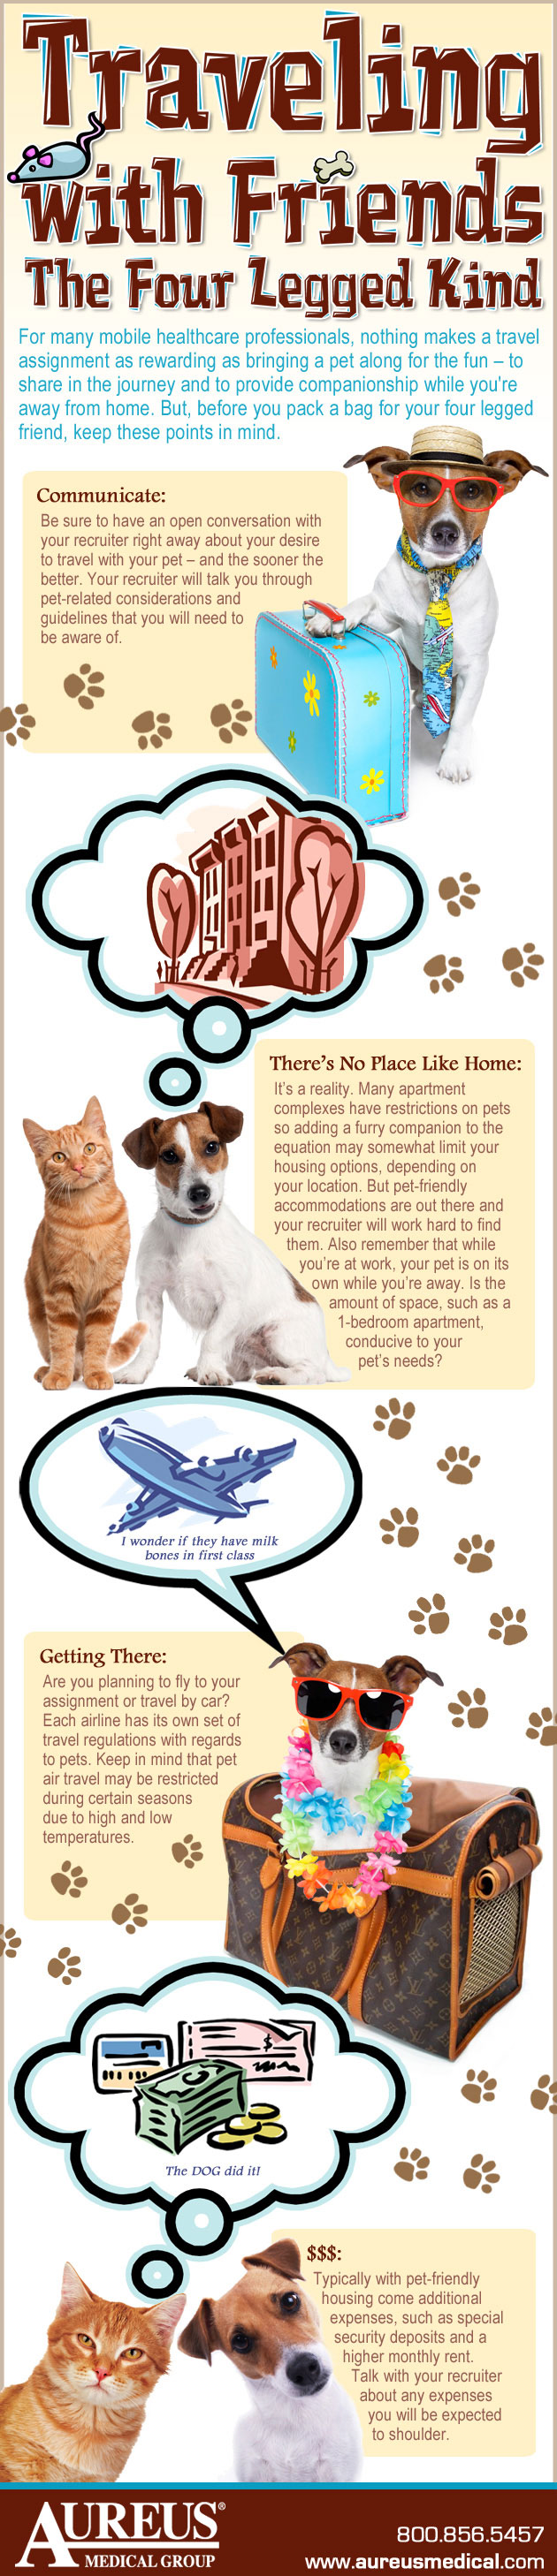 Traveling with Friends – The Four Legged Kind